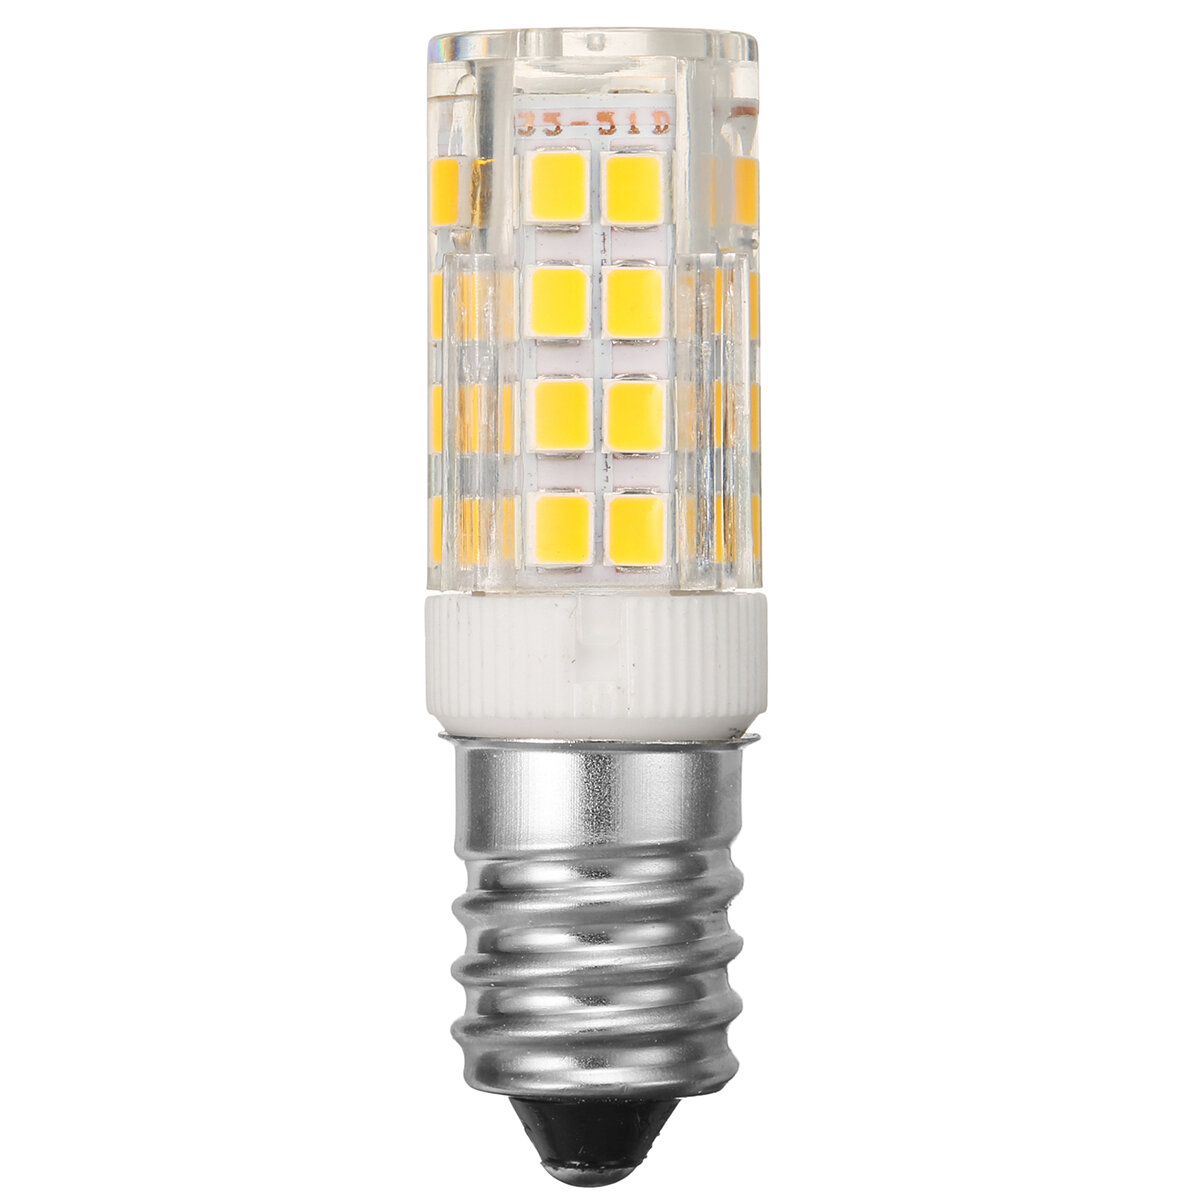 AC110-240V 9W G9 SMD2835 Non-dimmable 75 LED Ceramic Corn Light Bulb for Outdoor Home Decoration - 7